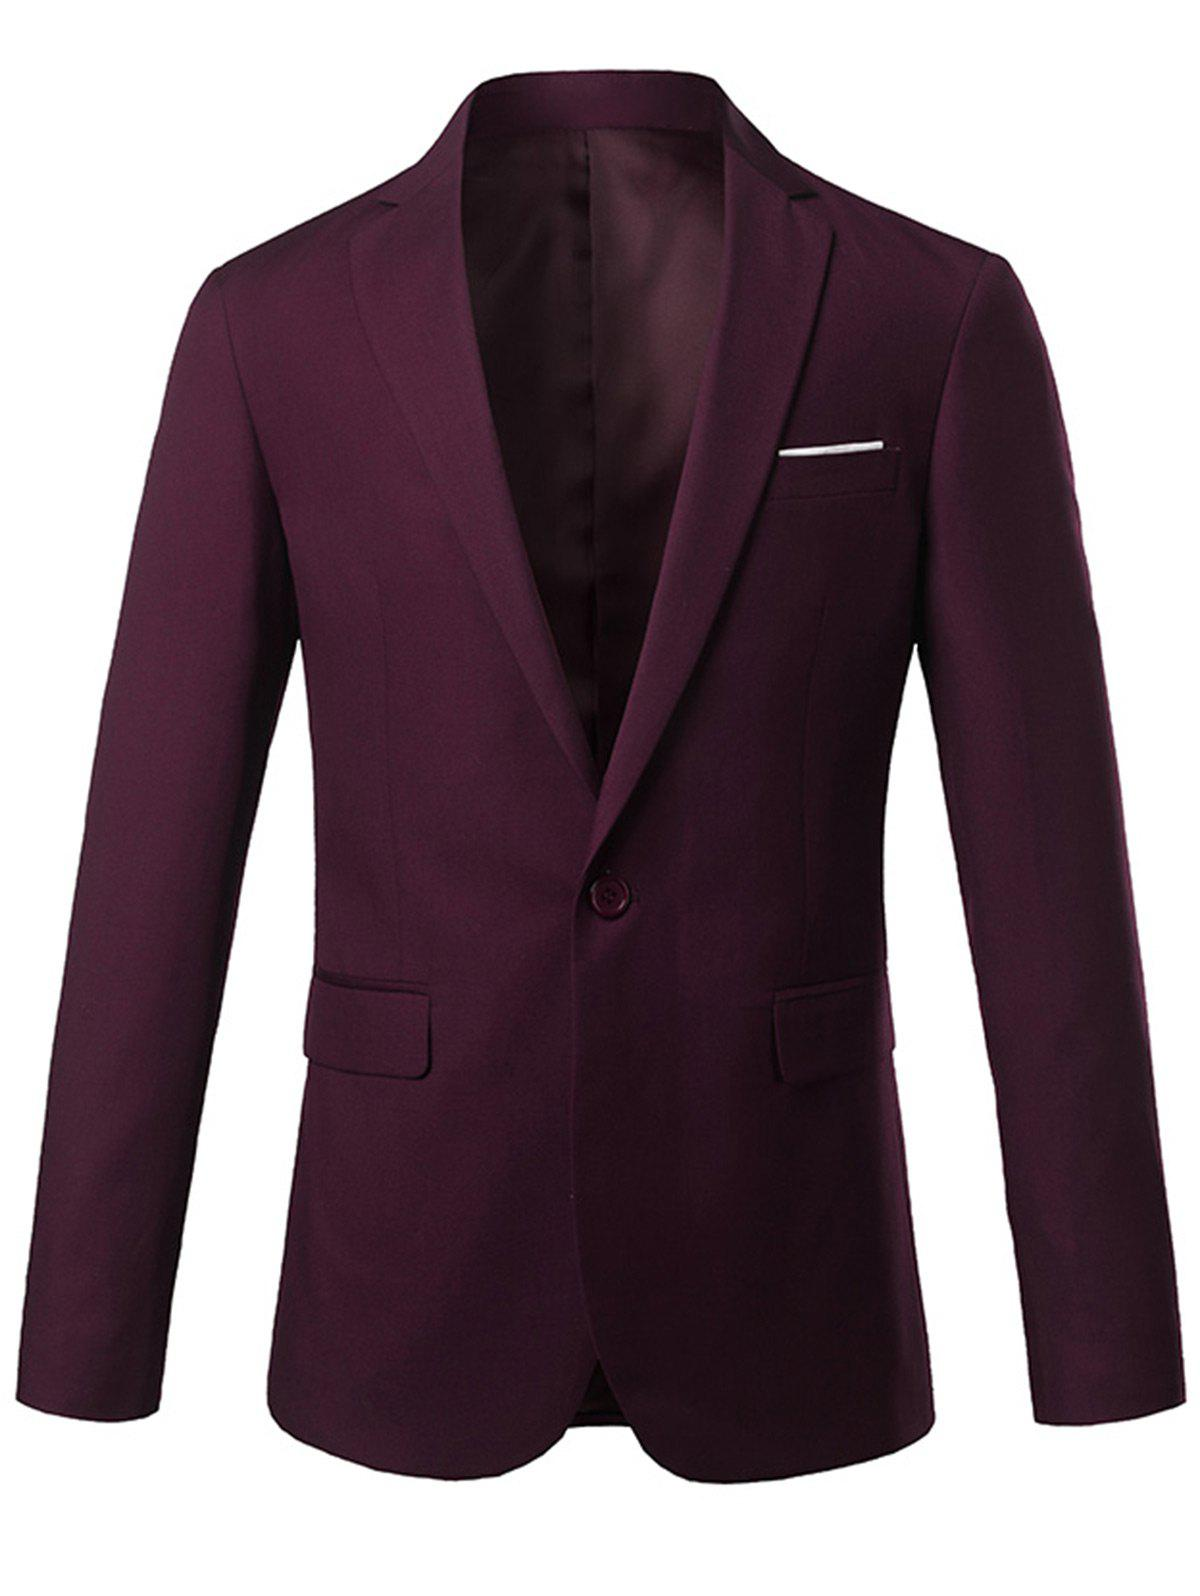 Lapel One Button Casual Blazer - Rouge vineux M